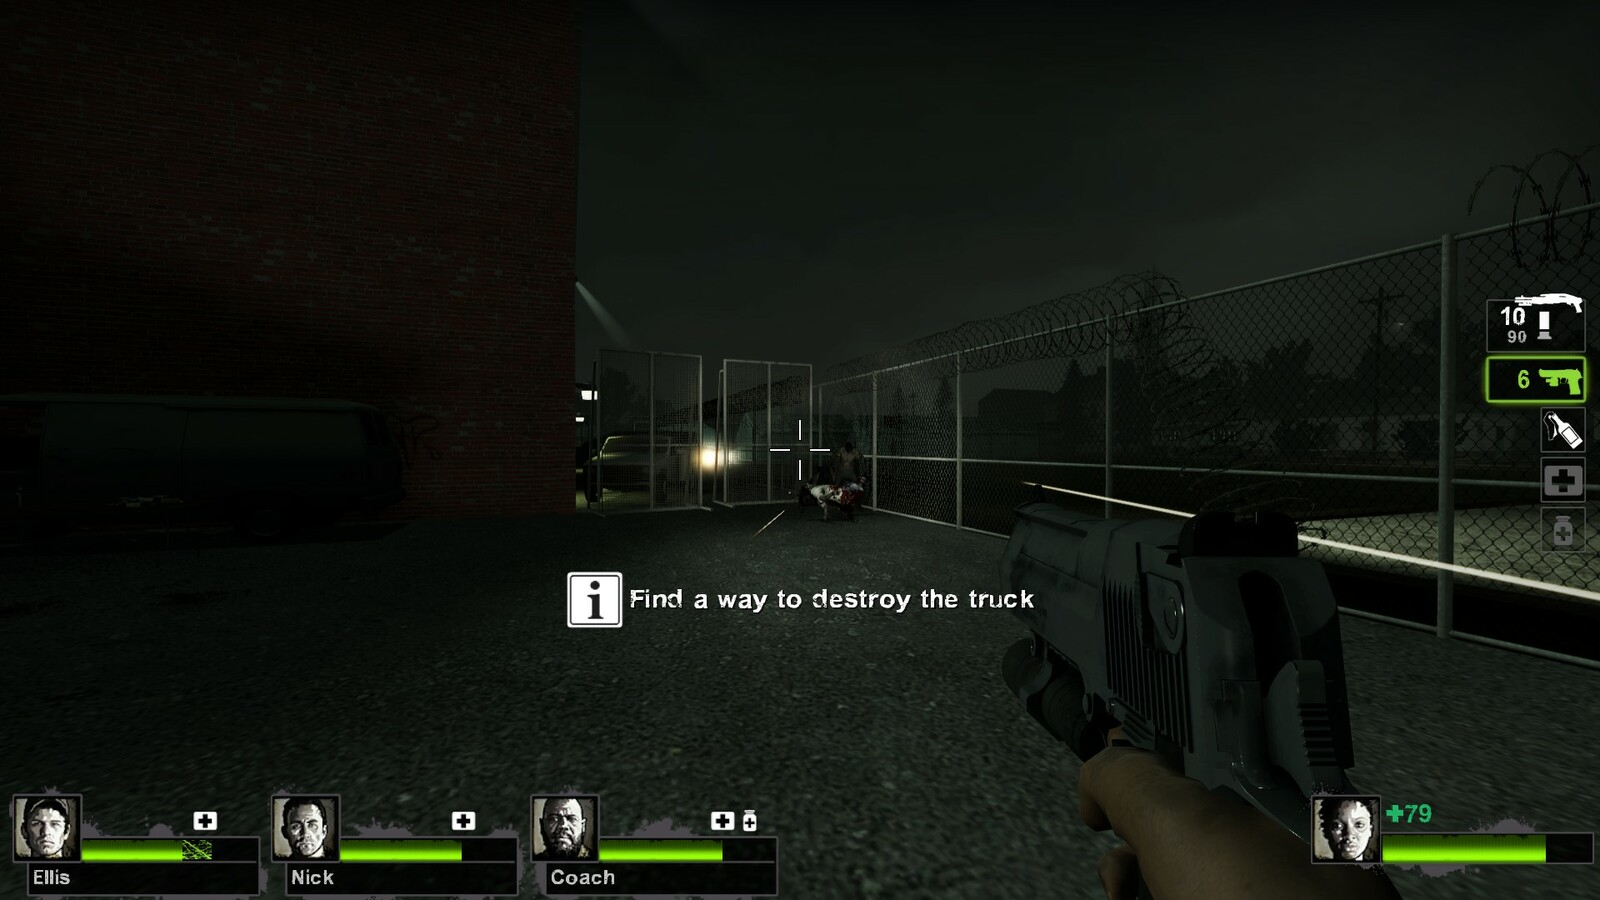 The second horde event. Players must find a way to destroy the truck to get through the barricade.